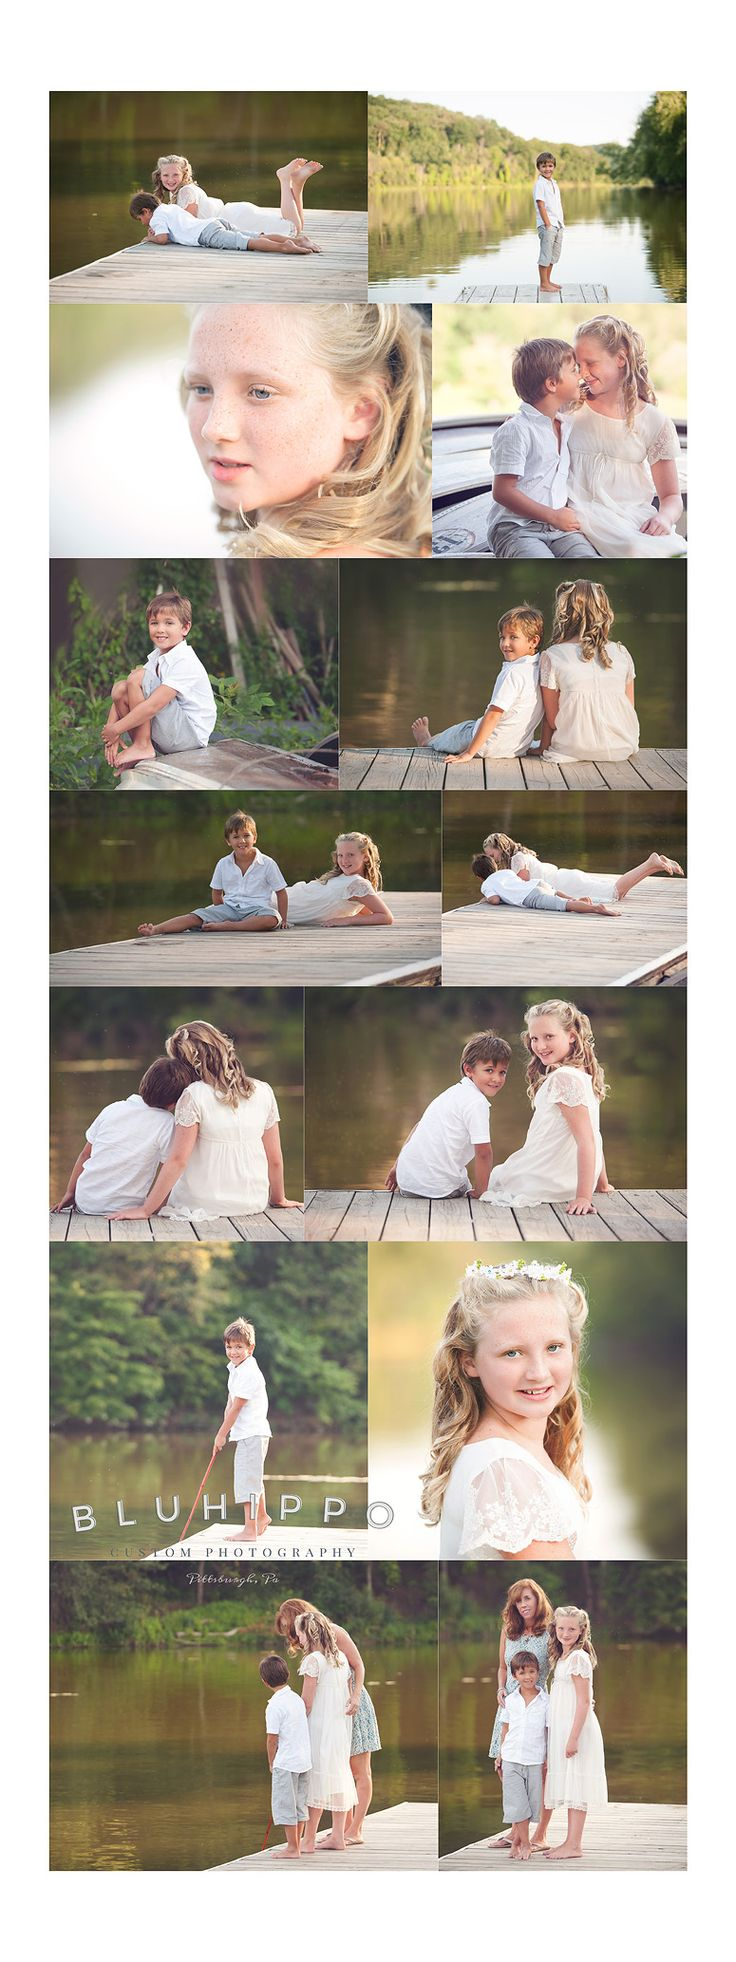 Bluhippo Photography Siblings on Dock